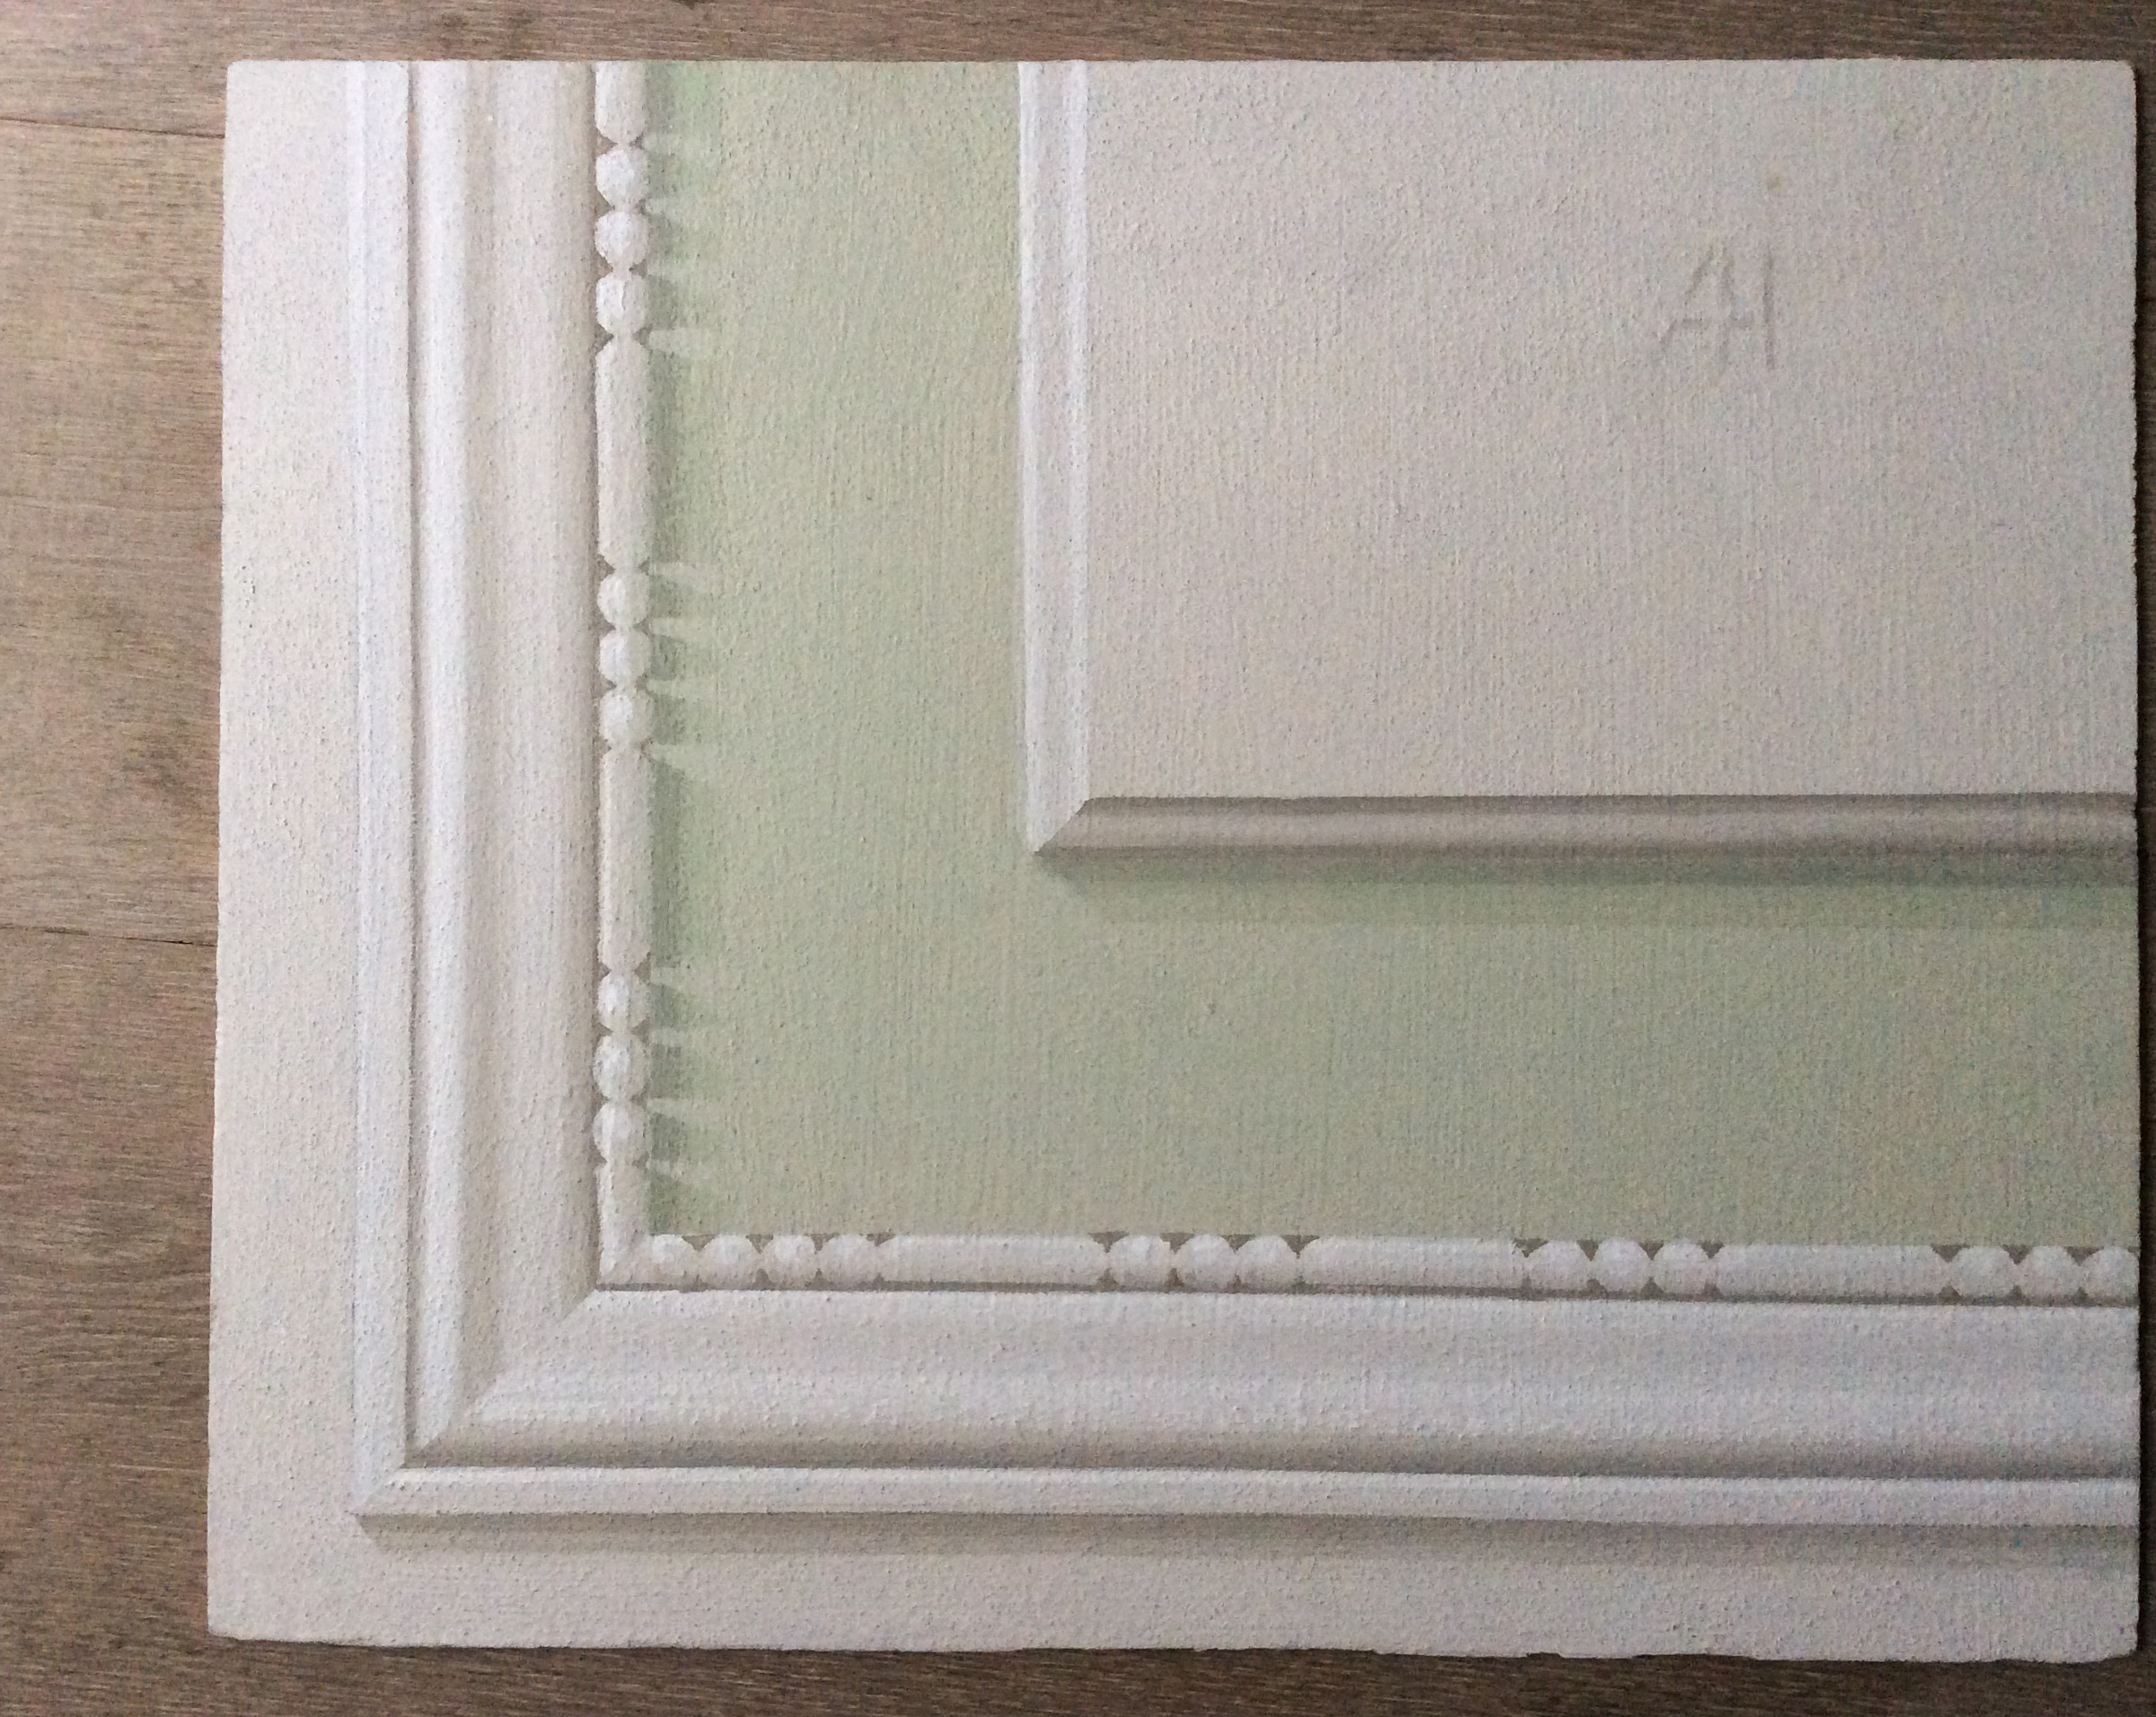 Green Painted Frame - Alexander Hamilton - Decorative Painter - London